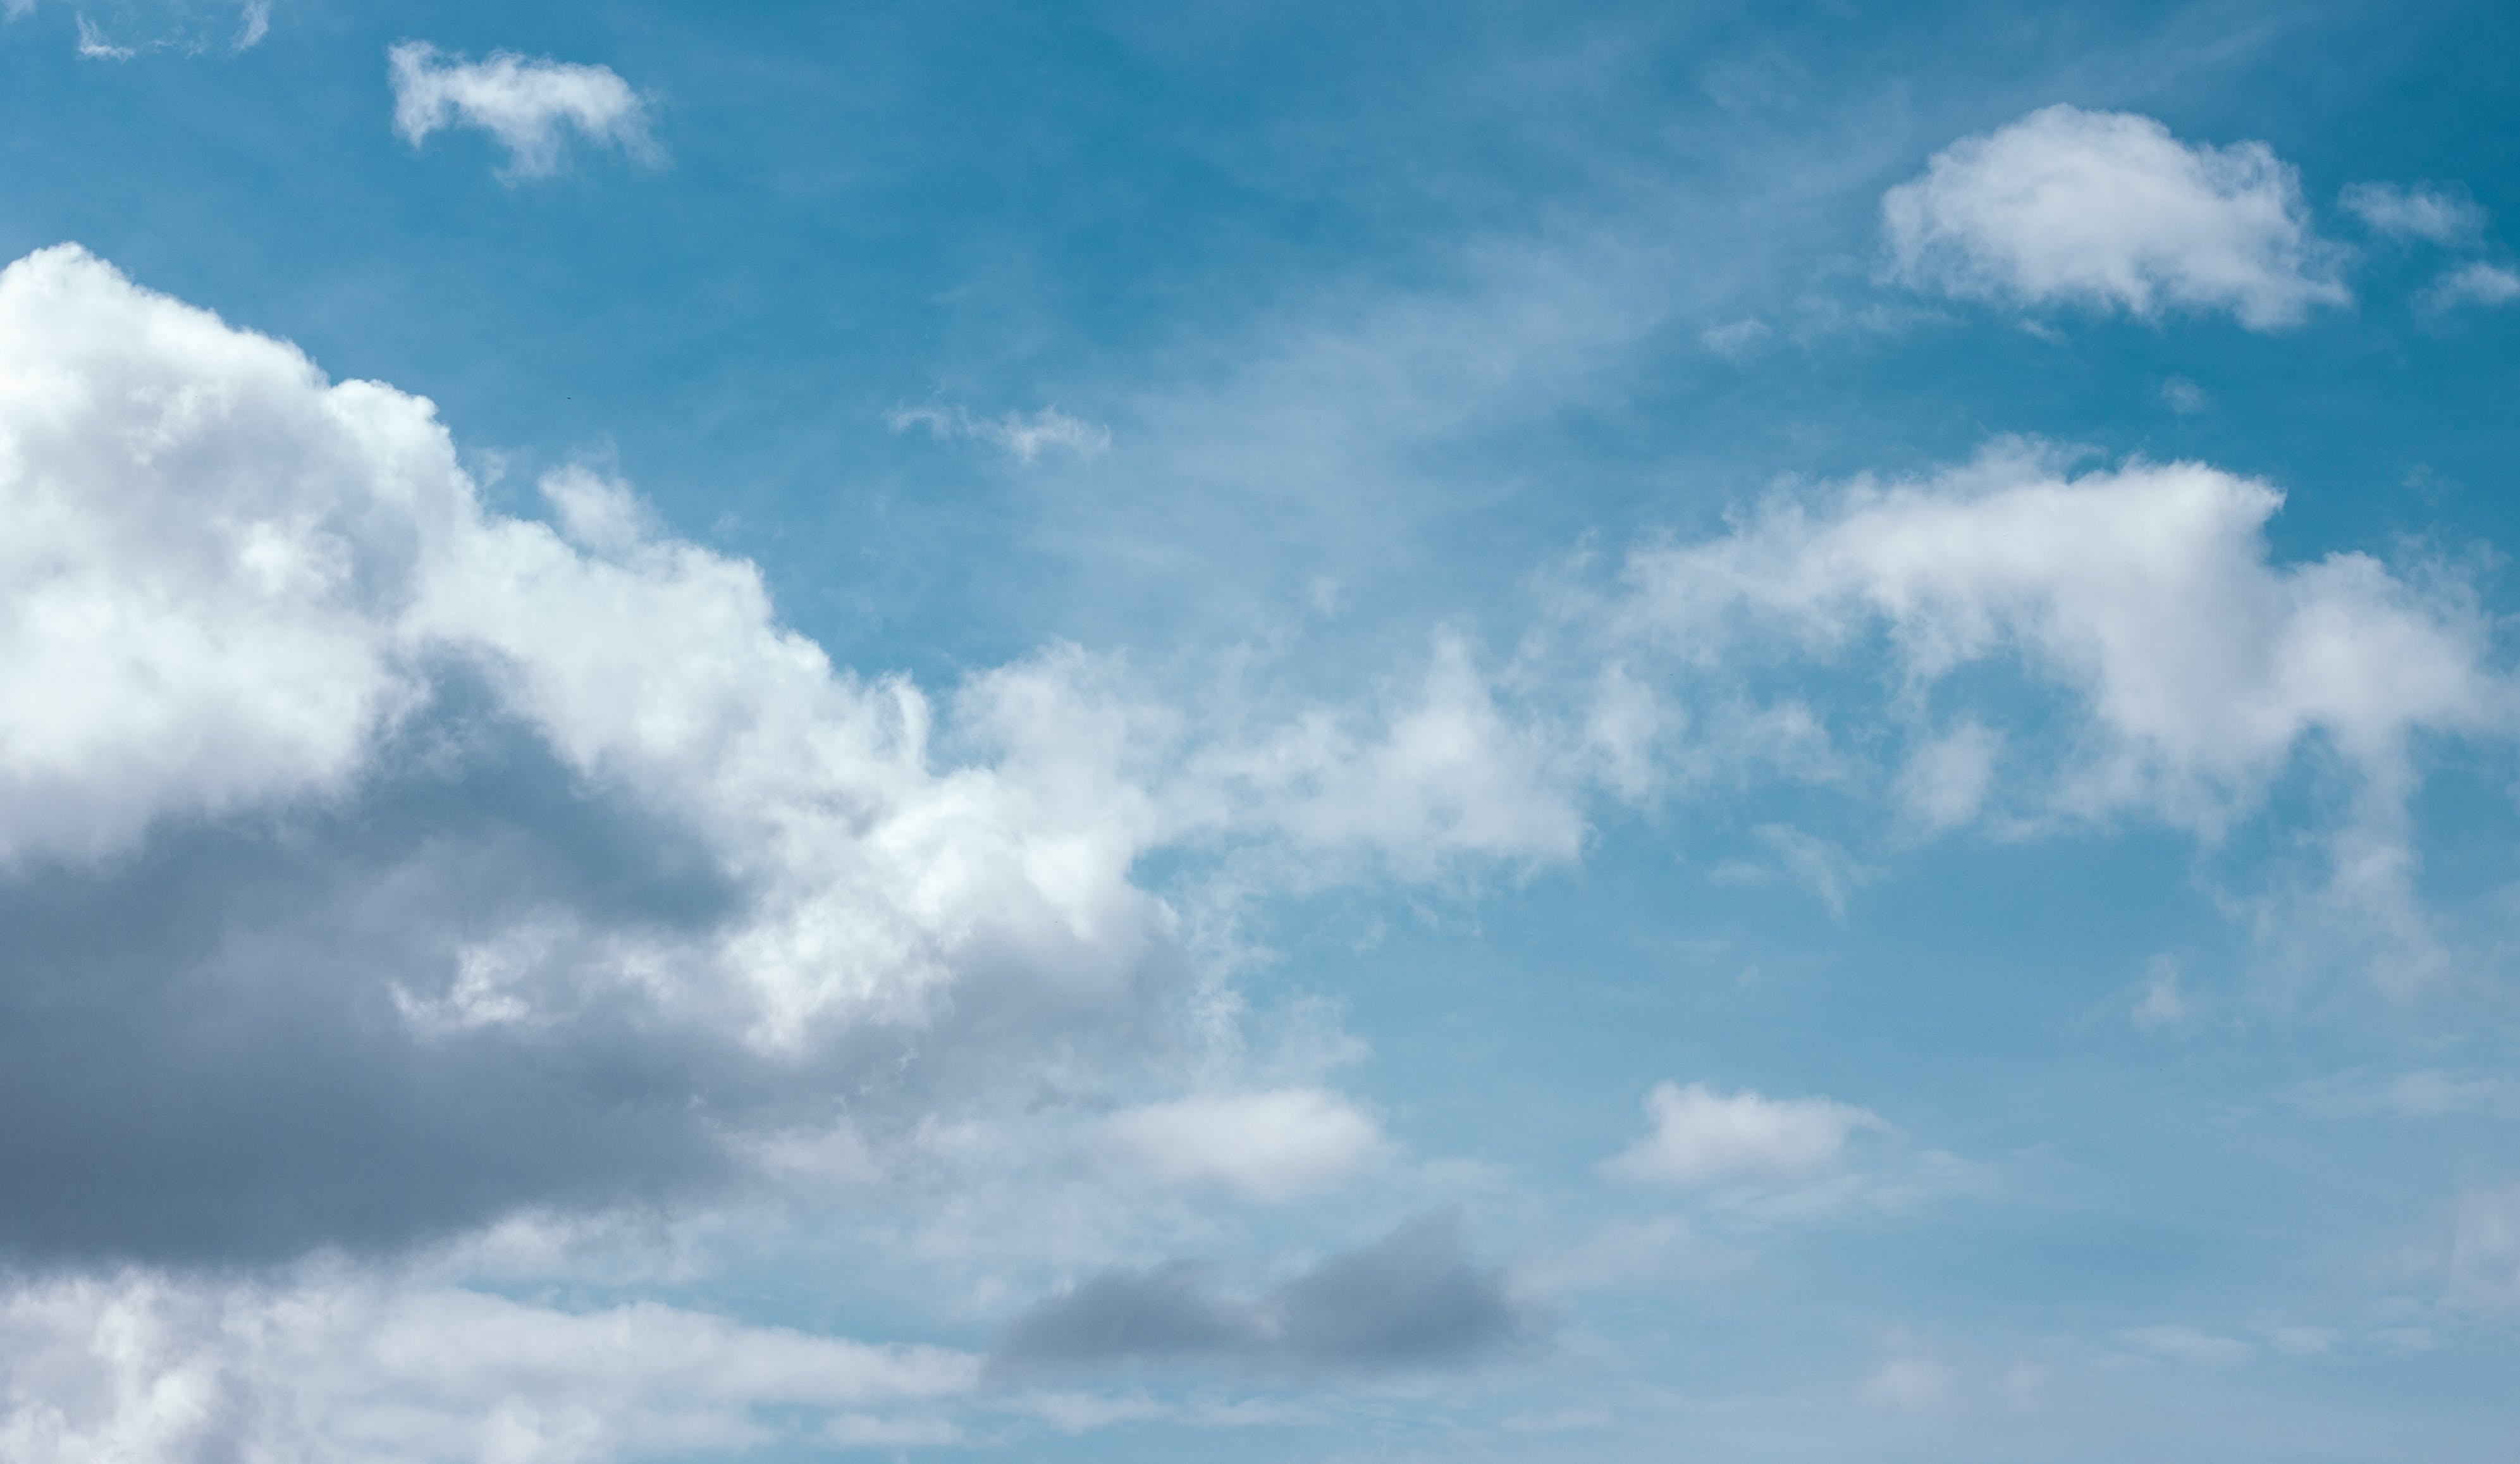 Free stock photo of sky, clouds, blue, music